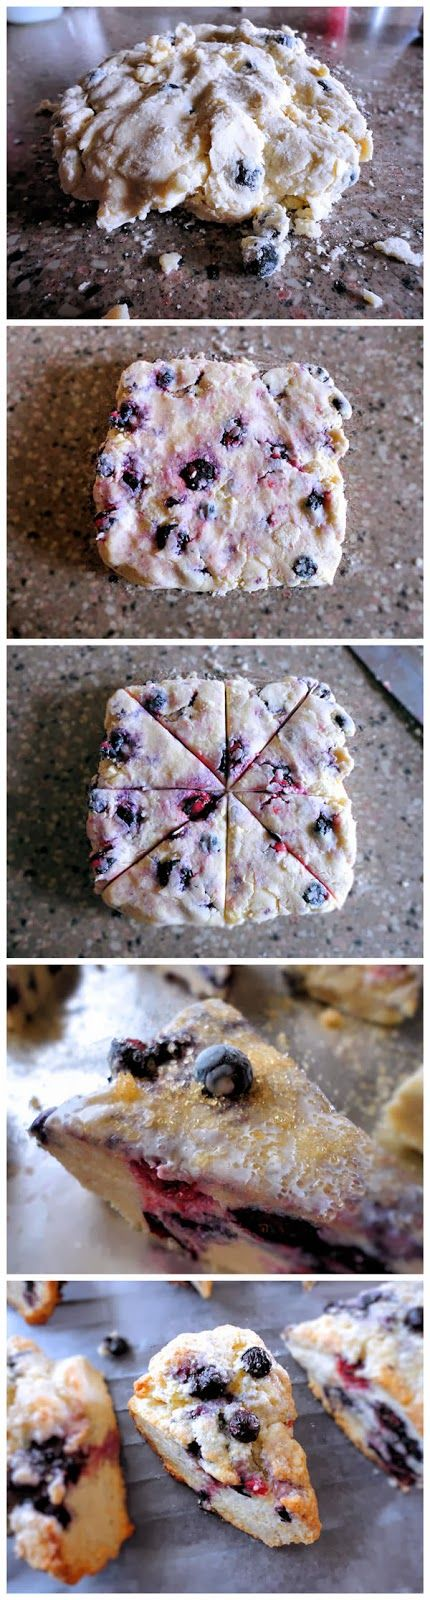 Blueberry Scones | Foodsweet | foodsweet